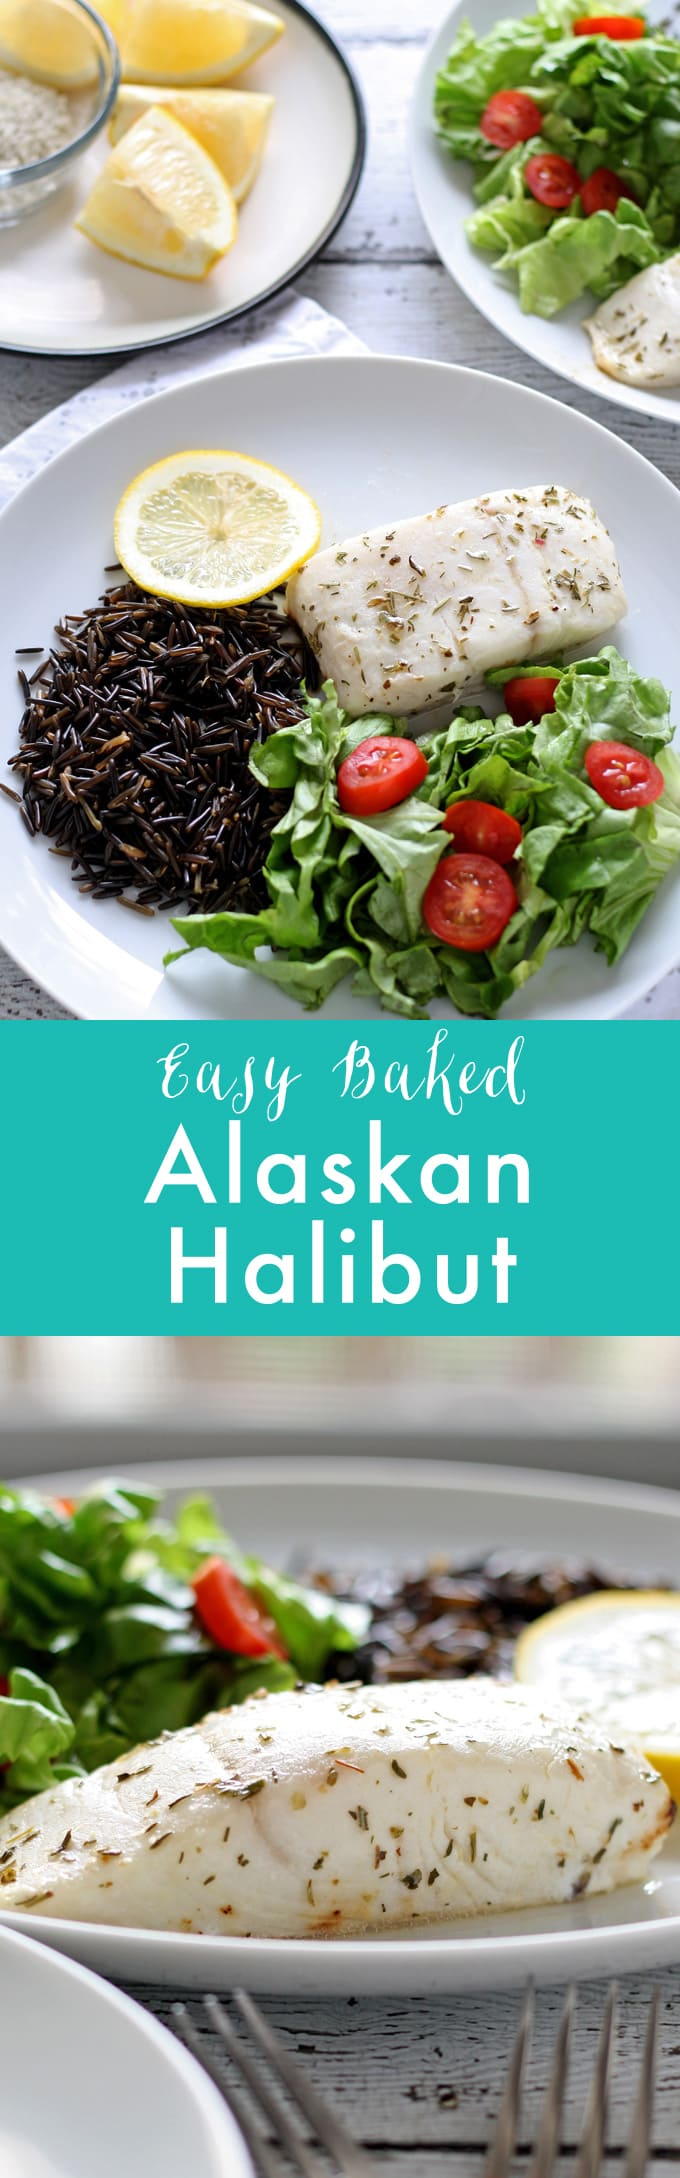 Easy Baked Alaskan Halibut - put this delicious fish dinner on the table in under 30 minutes! #WildAlaskaSeafood #30minutemeal